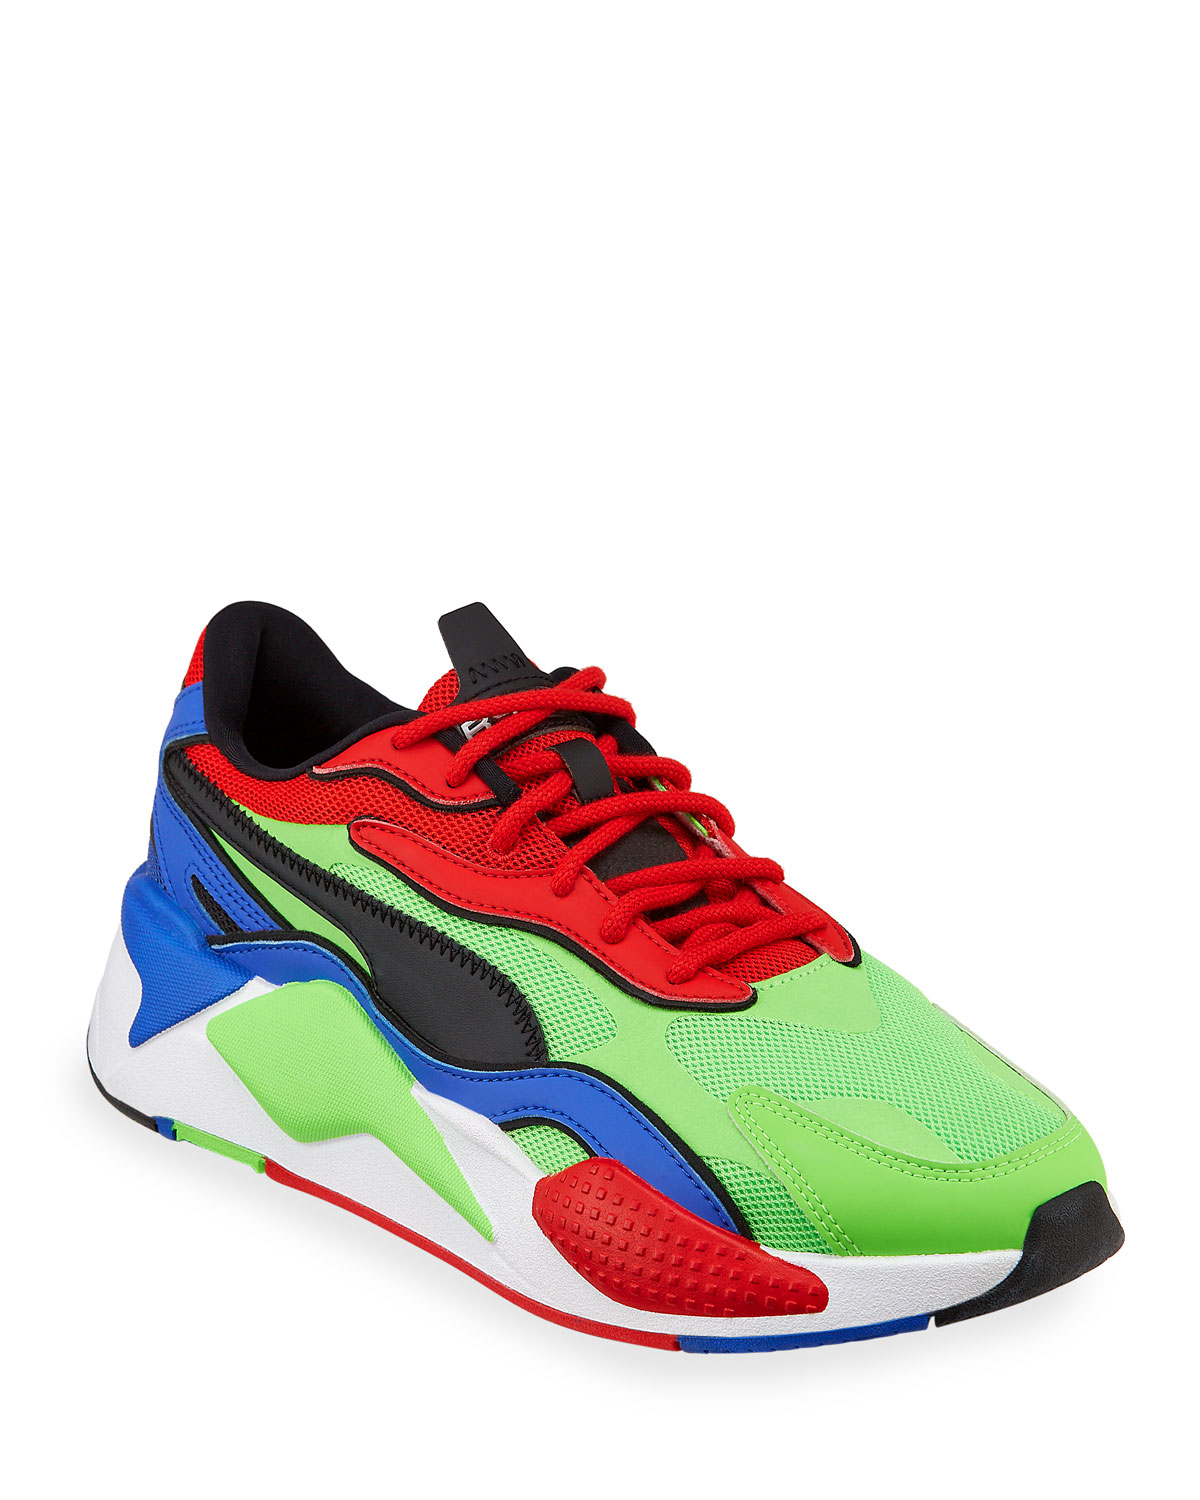 Puma Men's RS-X Tailored Runner Sneakers